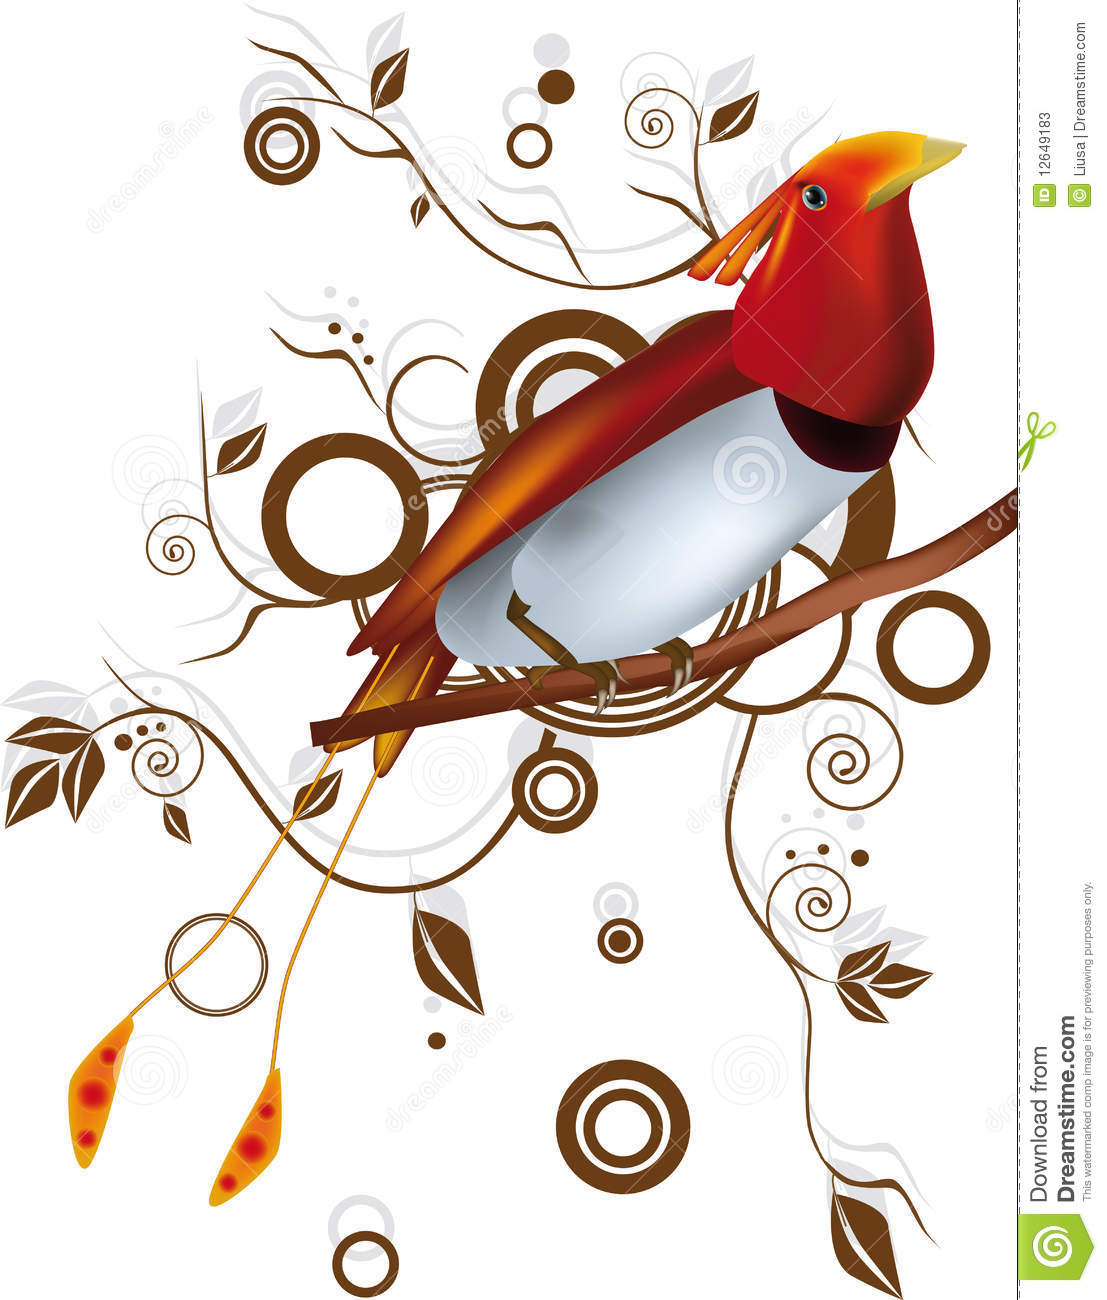 Paradise bird and ornamen flower foliage.